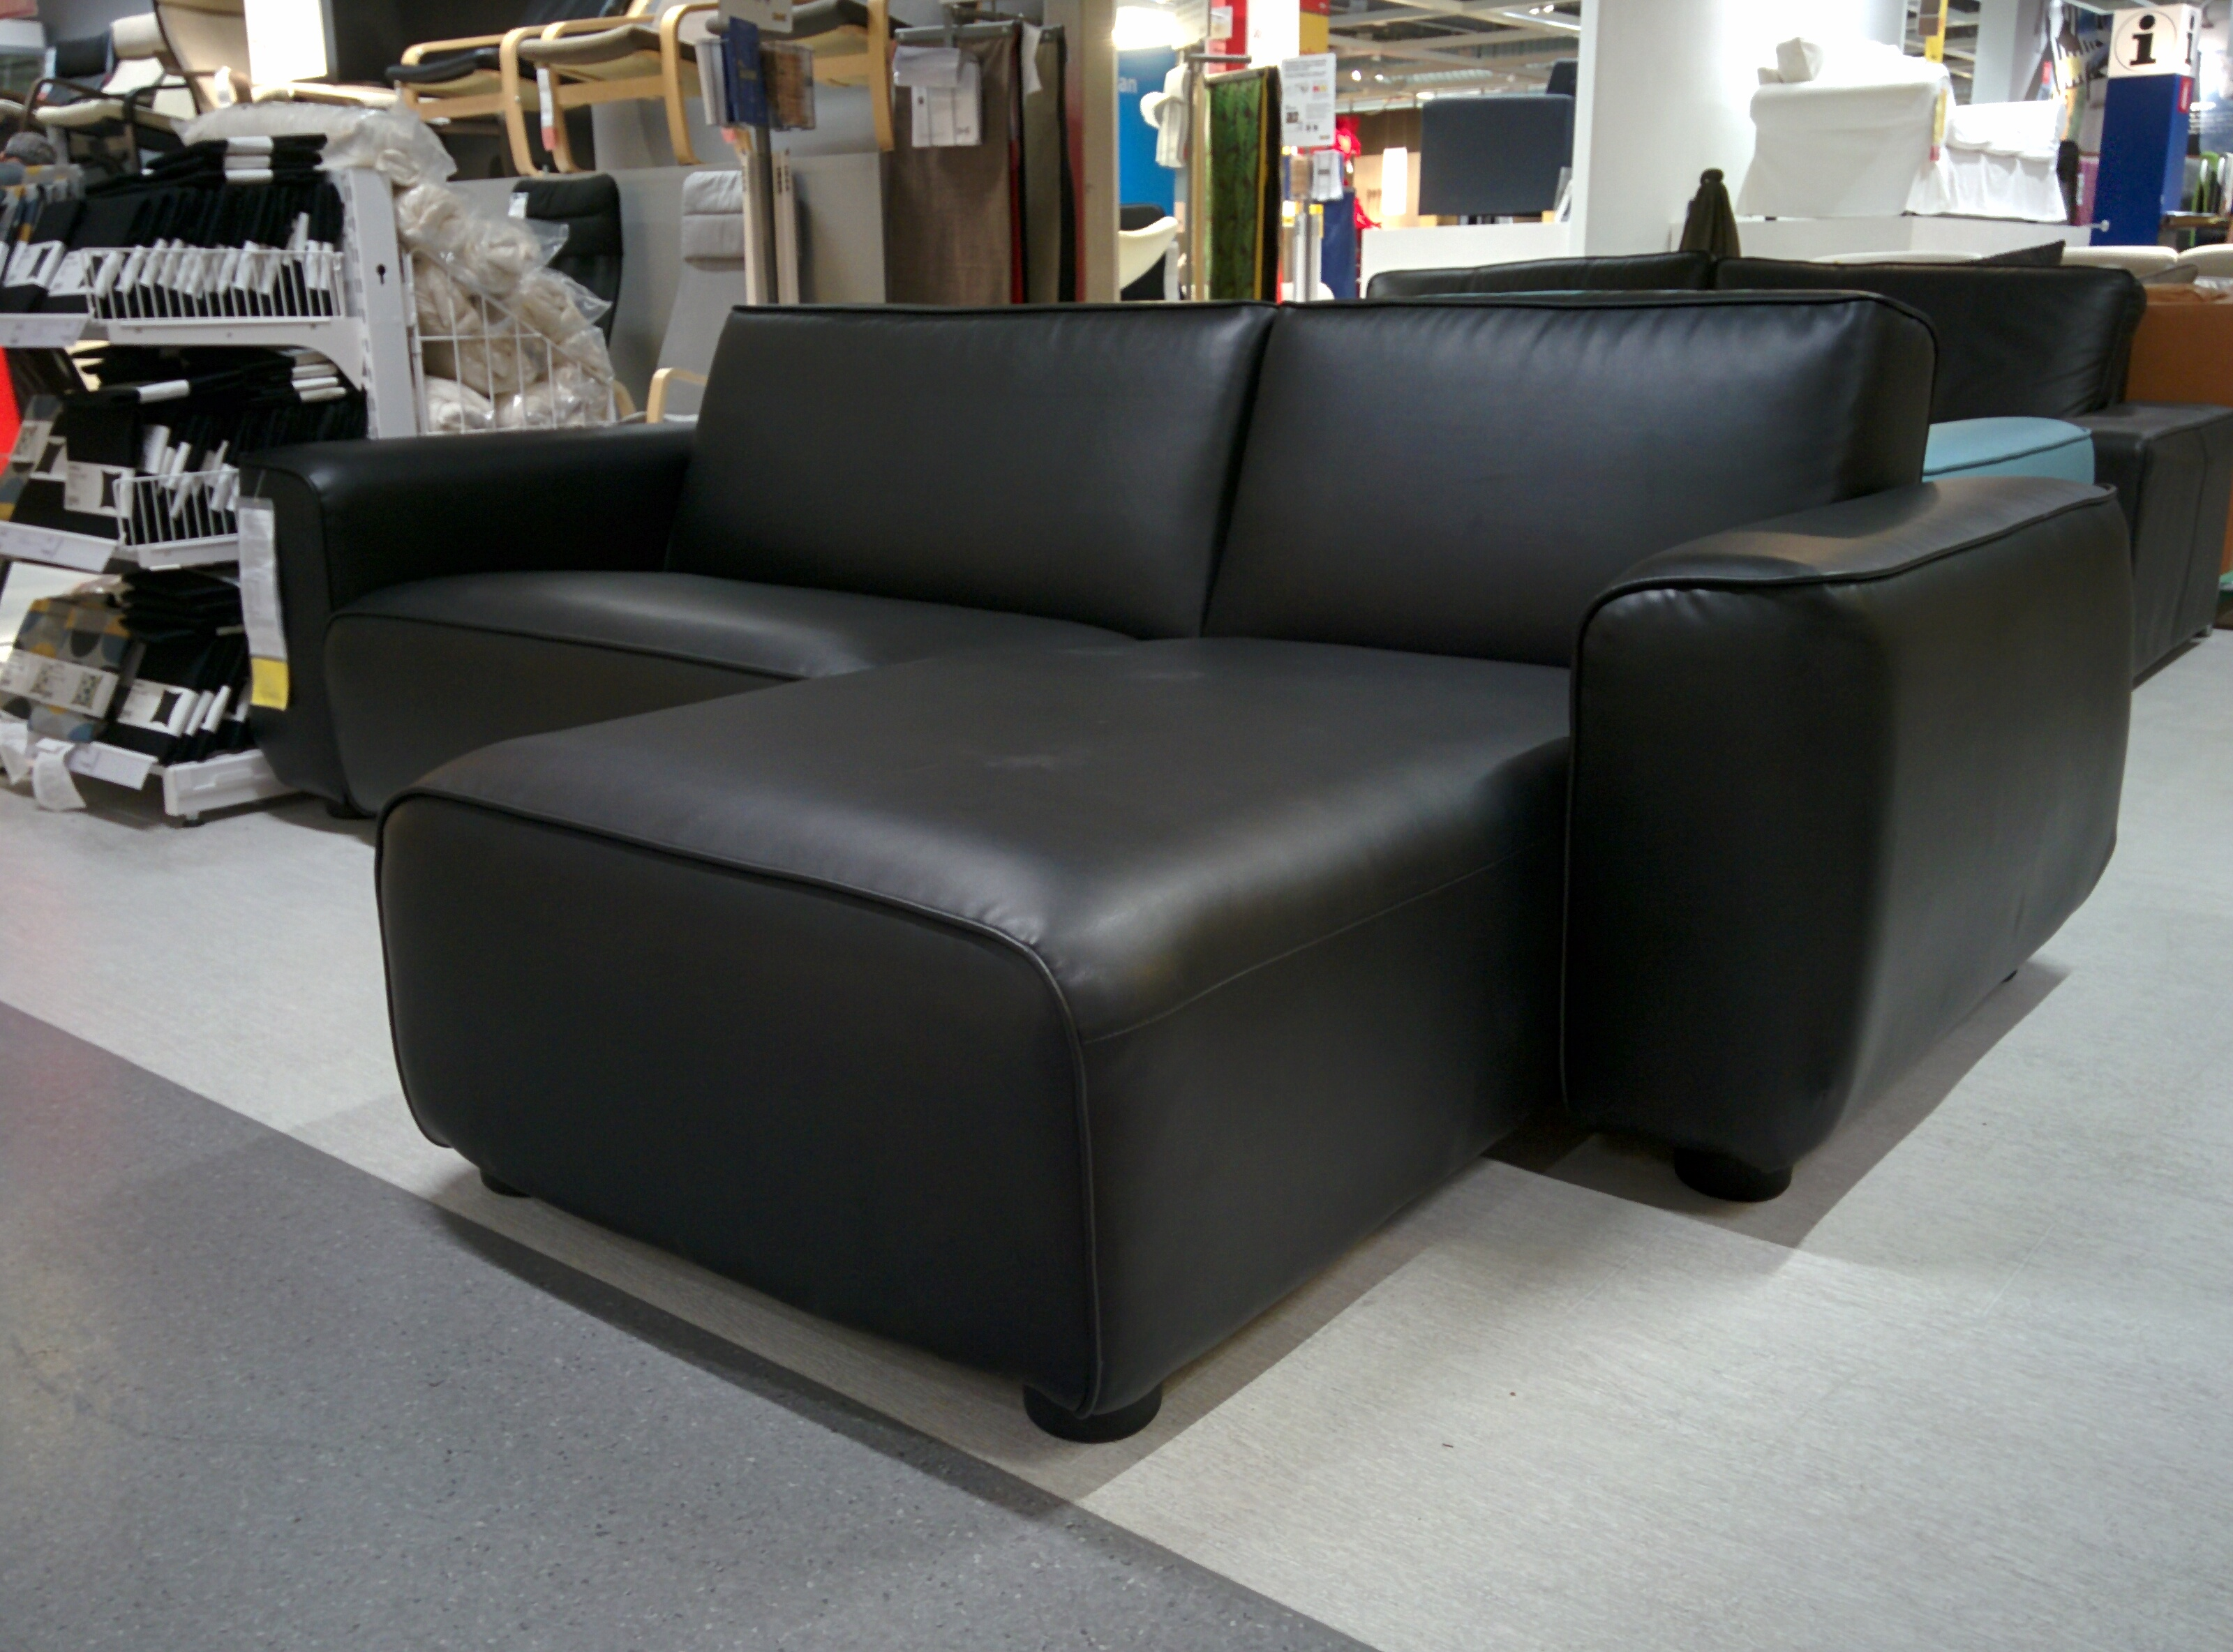 The dagarn ikea sofa review Loveseats with console